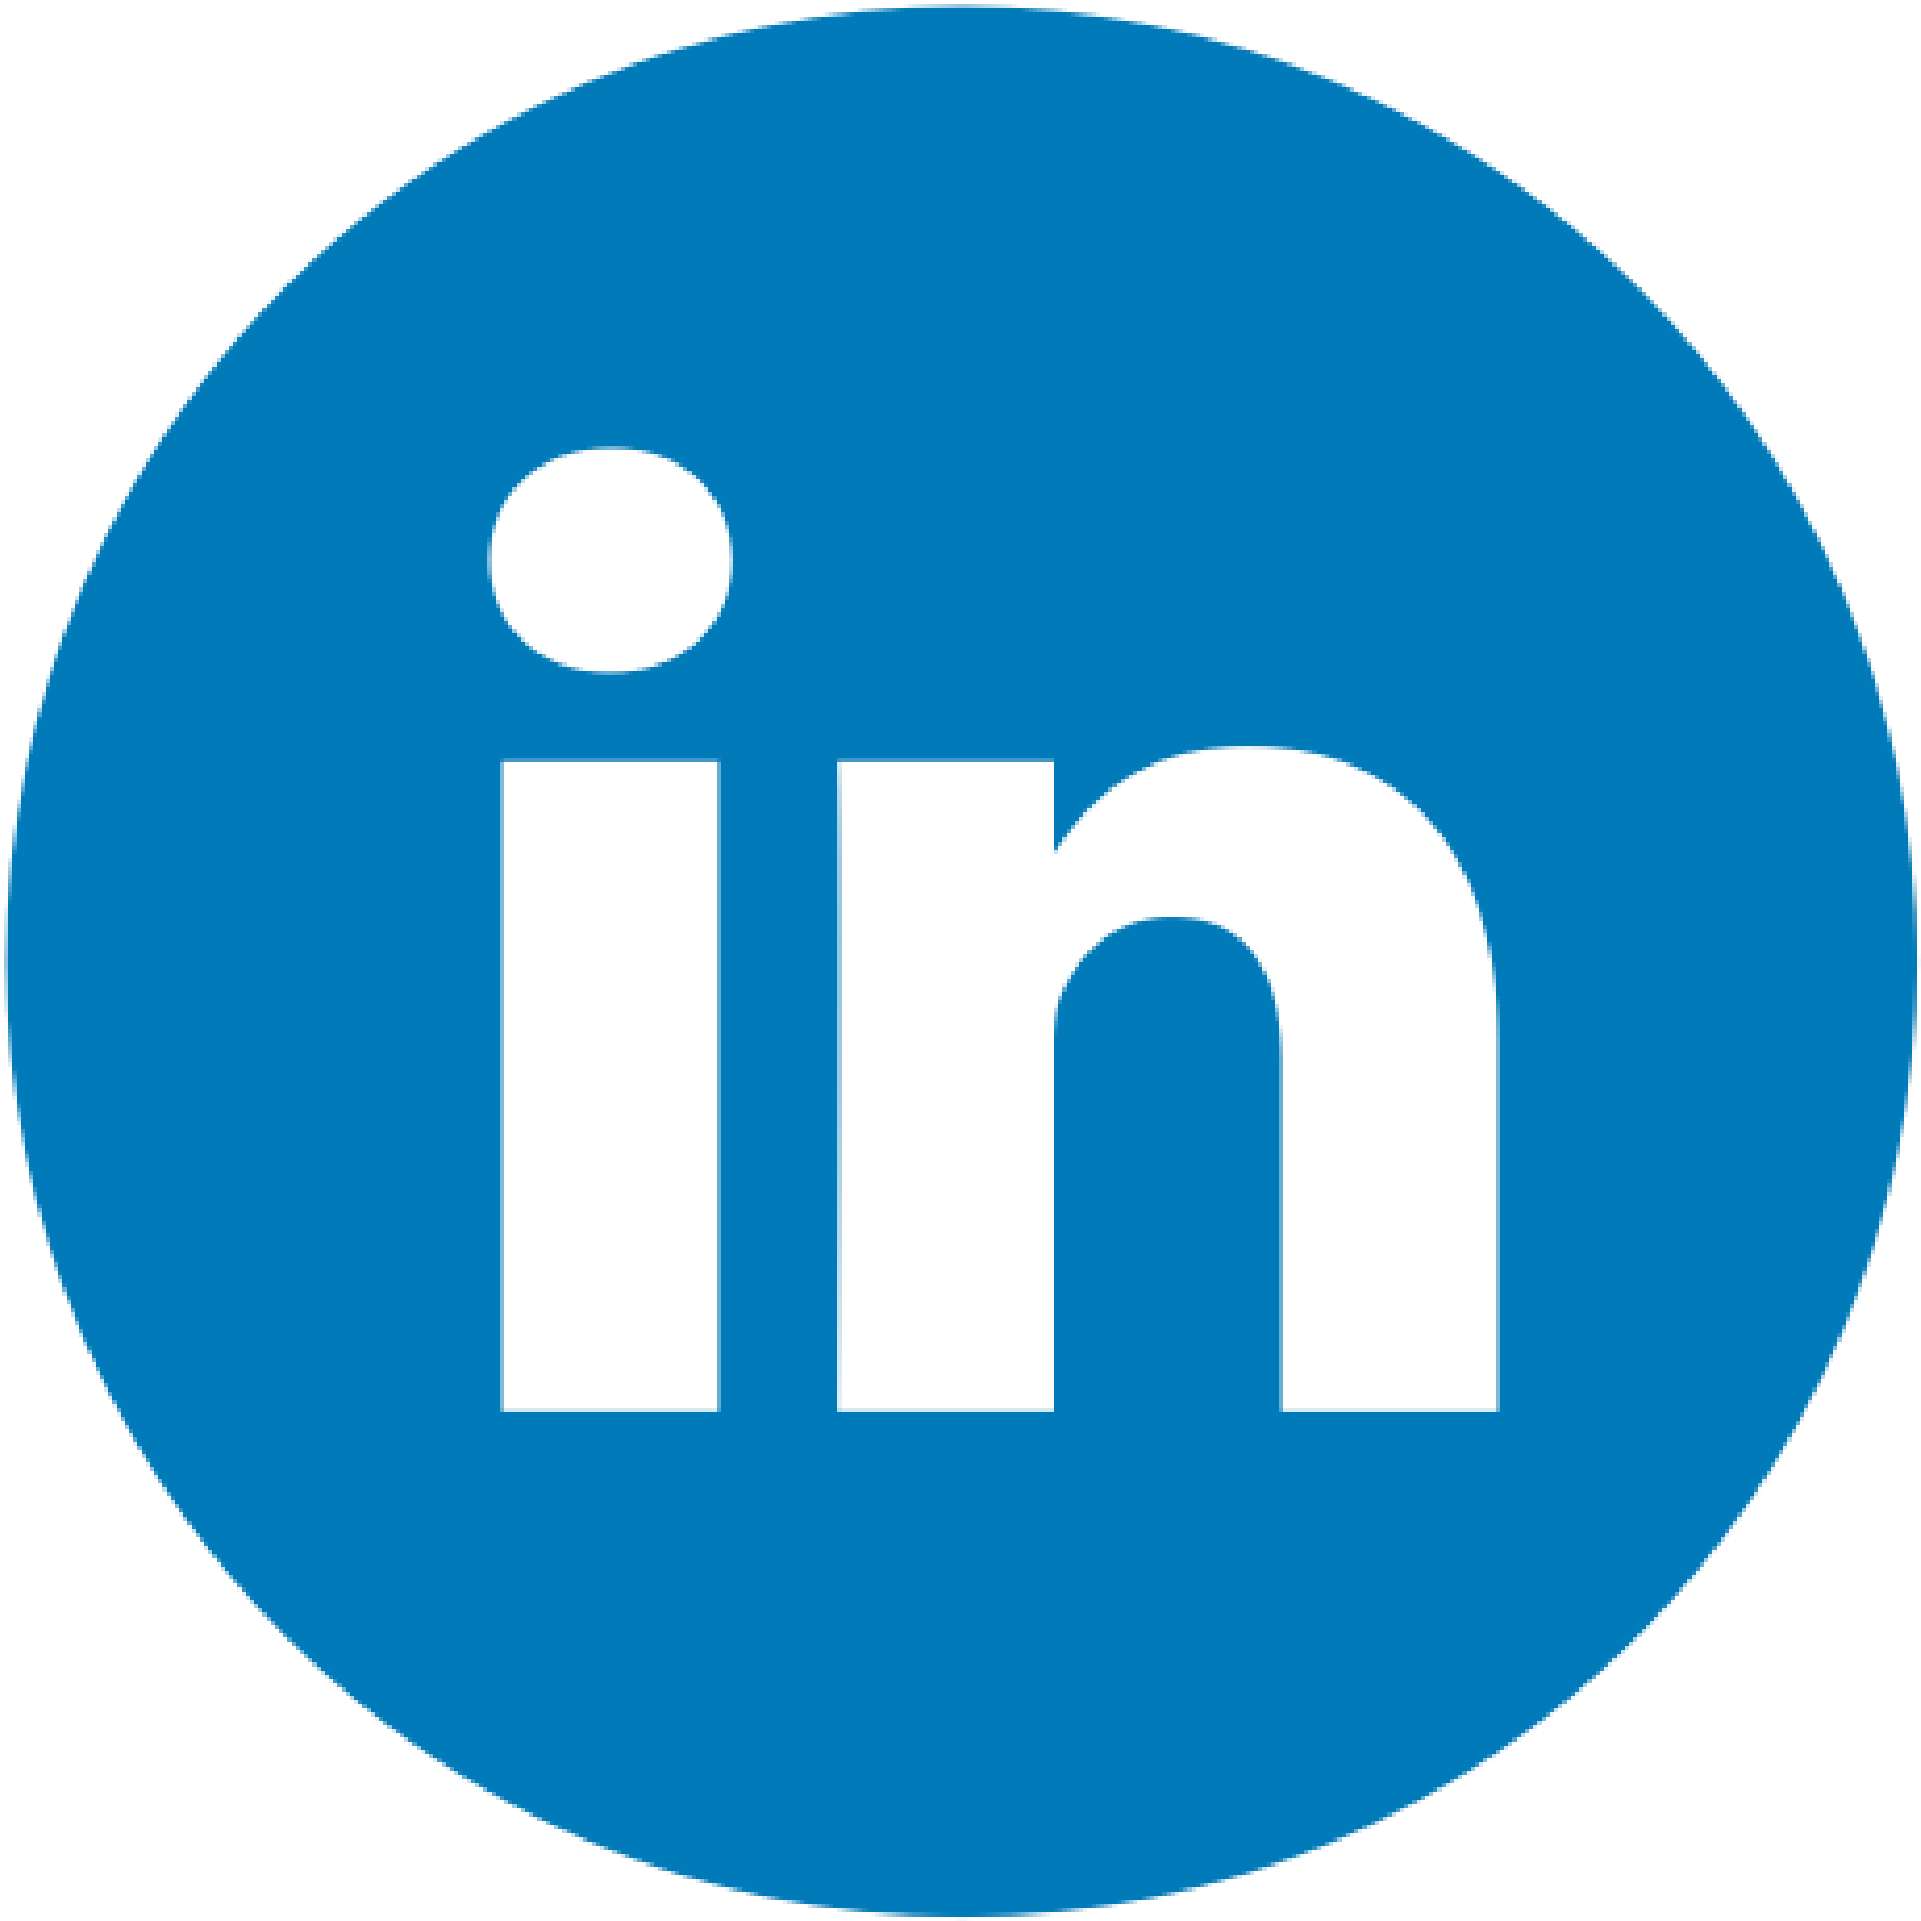 LinkedIn Circle Icon Cropped